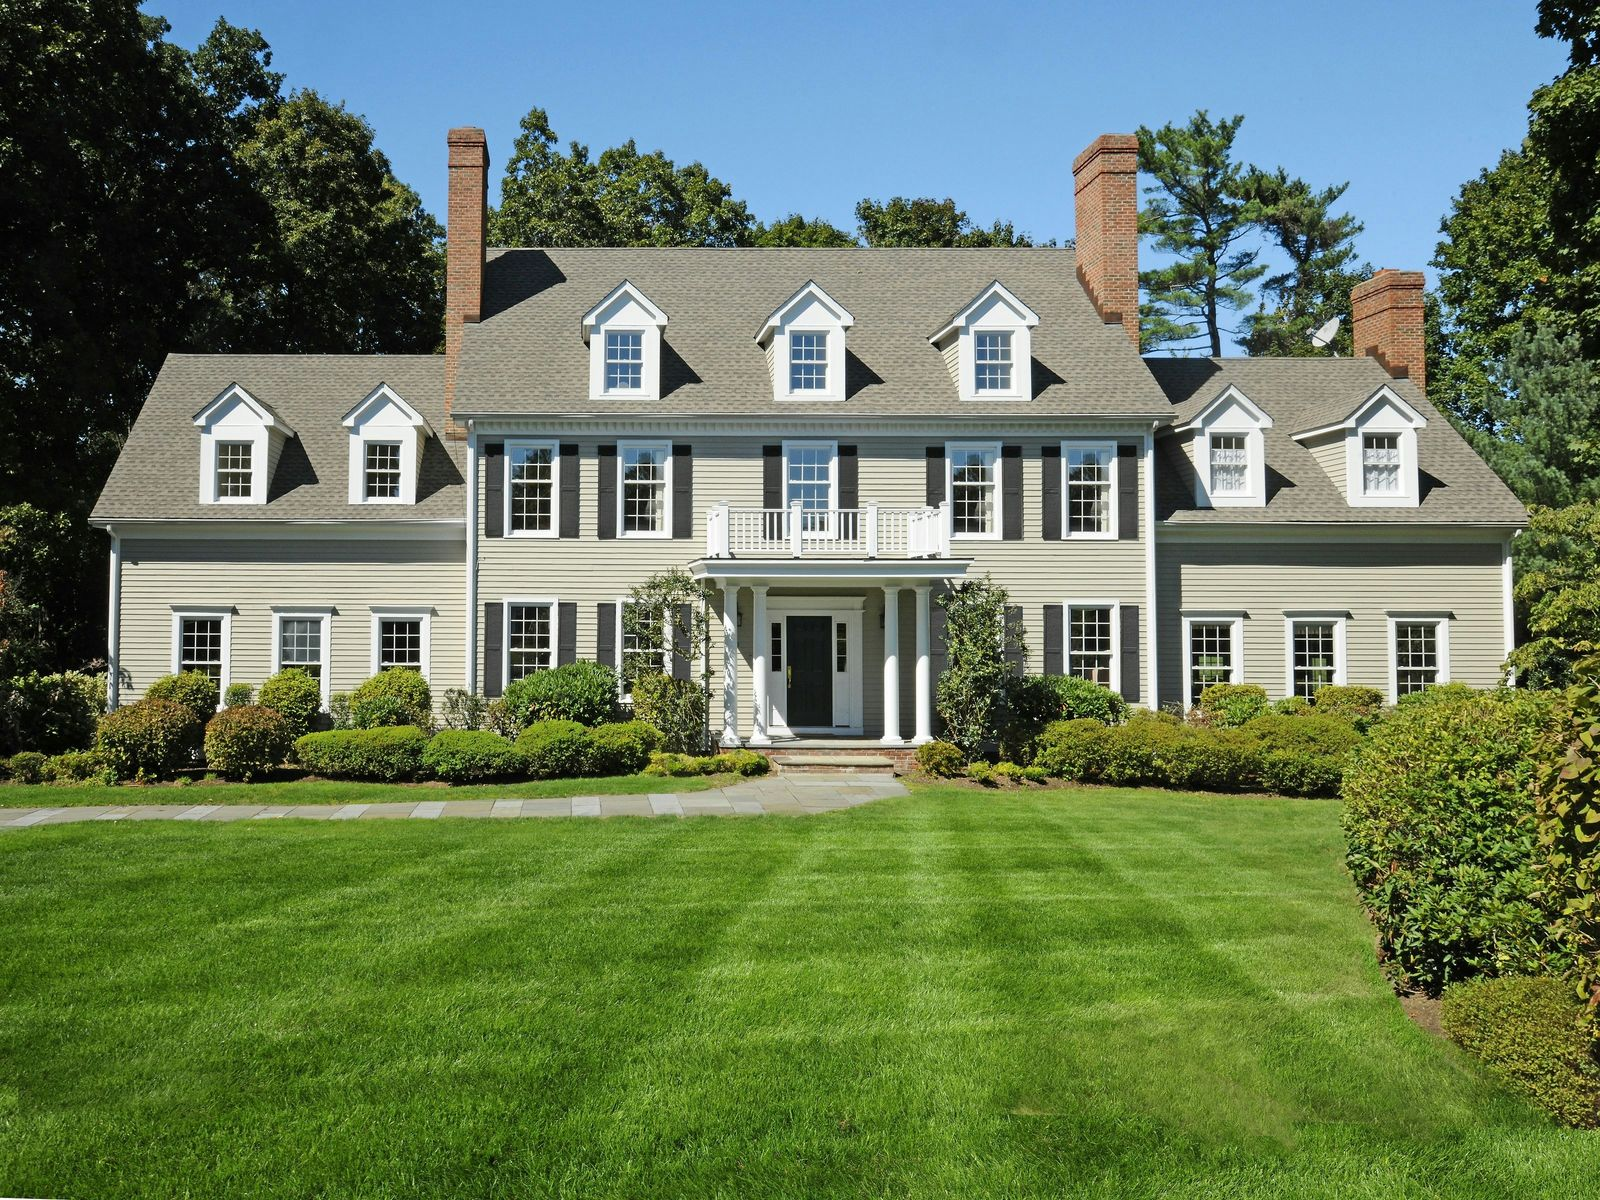 Cobb Island, Greenwich CT Single Family Home - Greenwich Real Estate